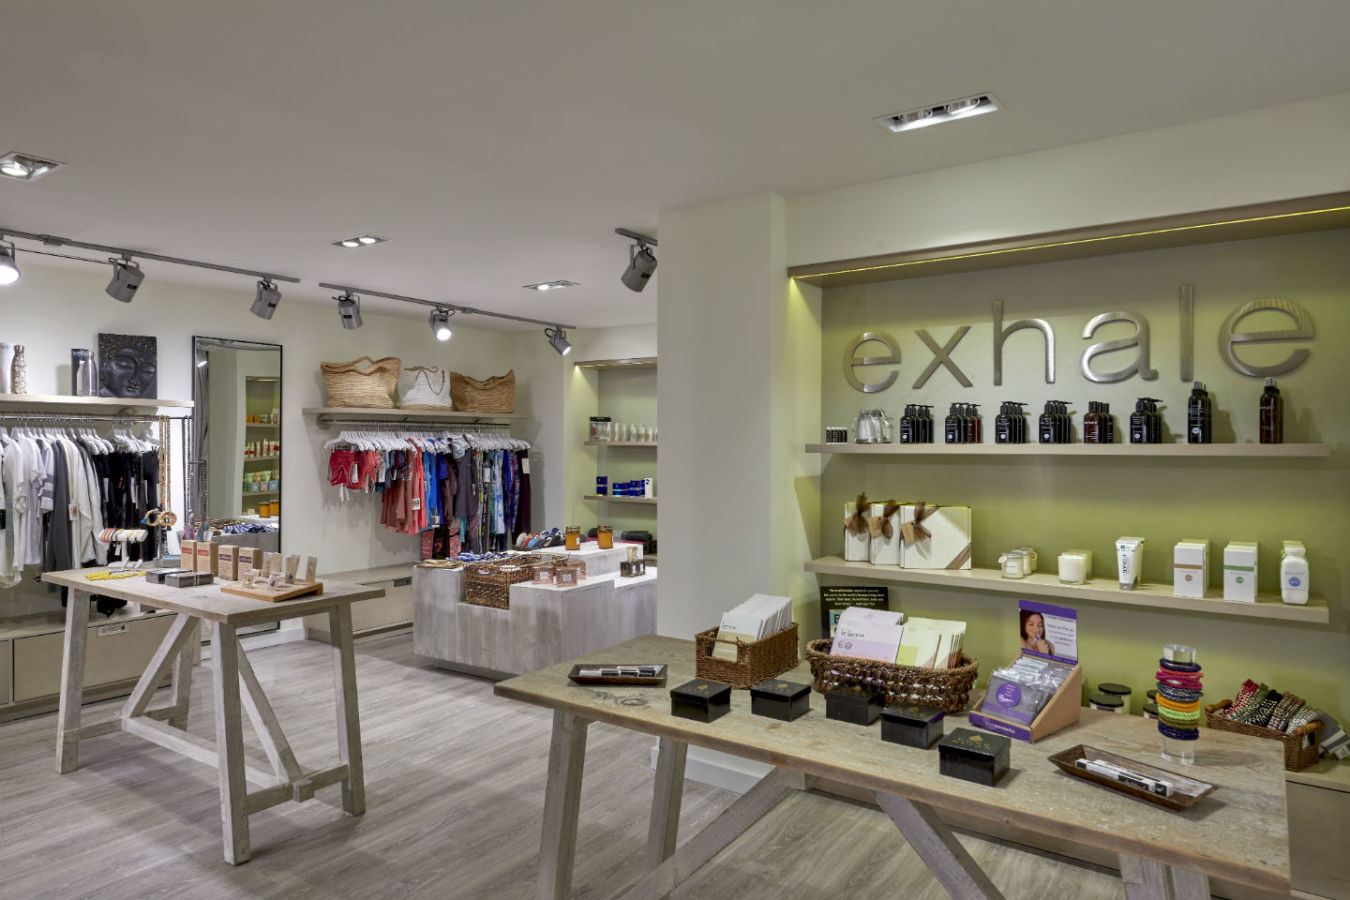 Exhale Wellbeing Boutique